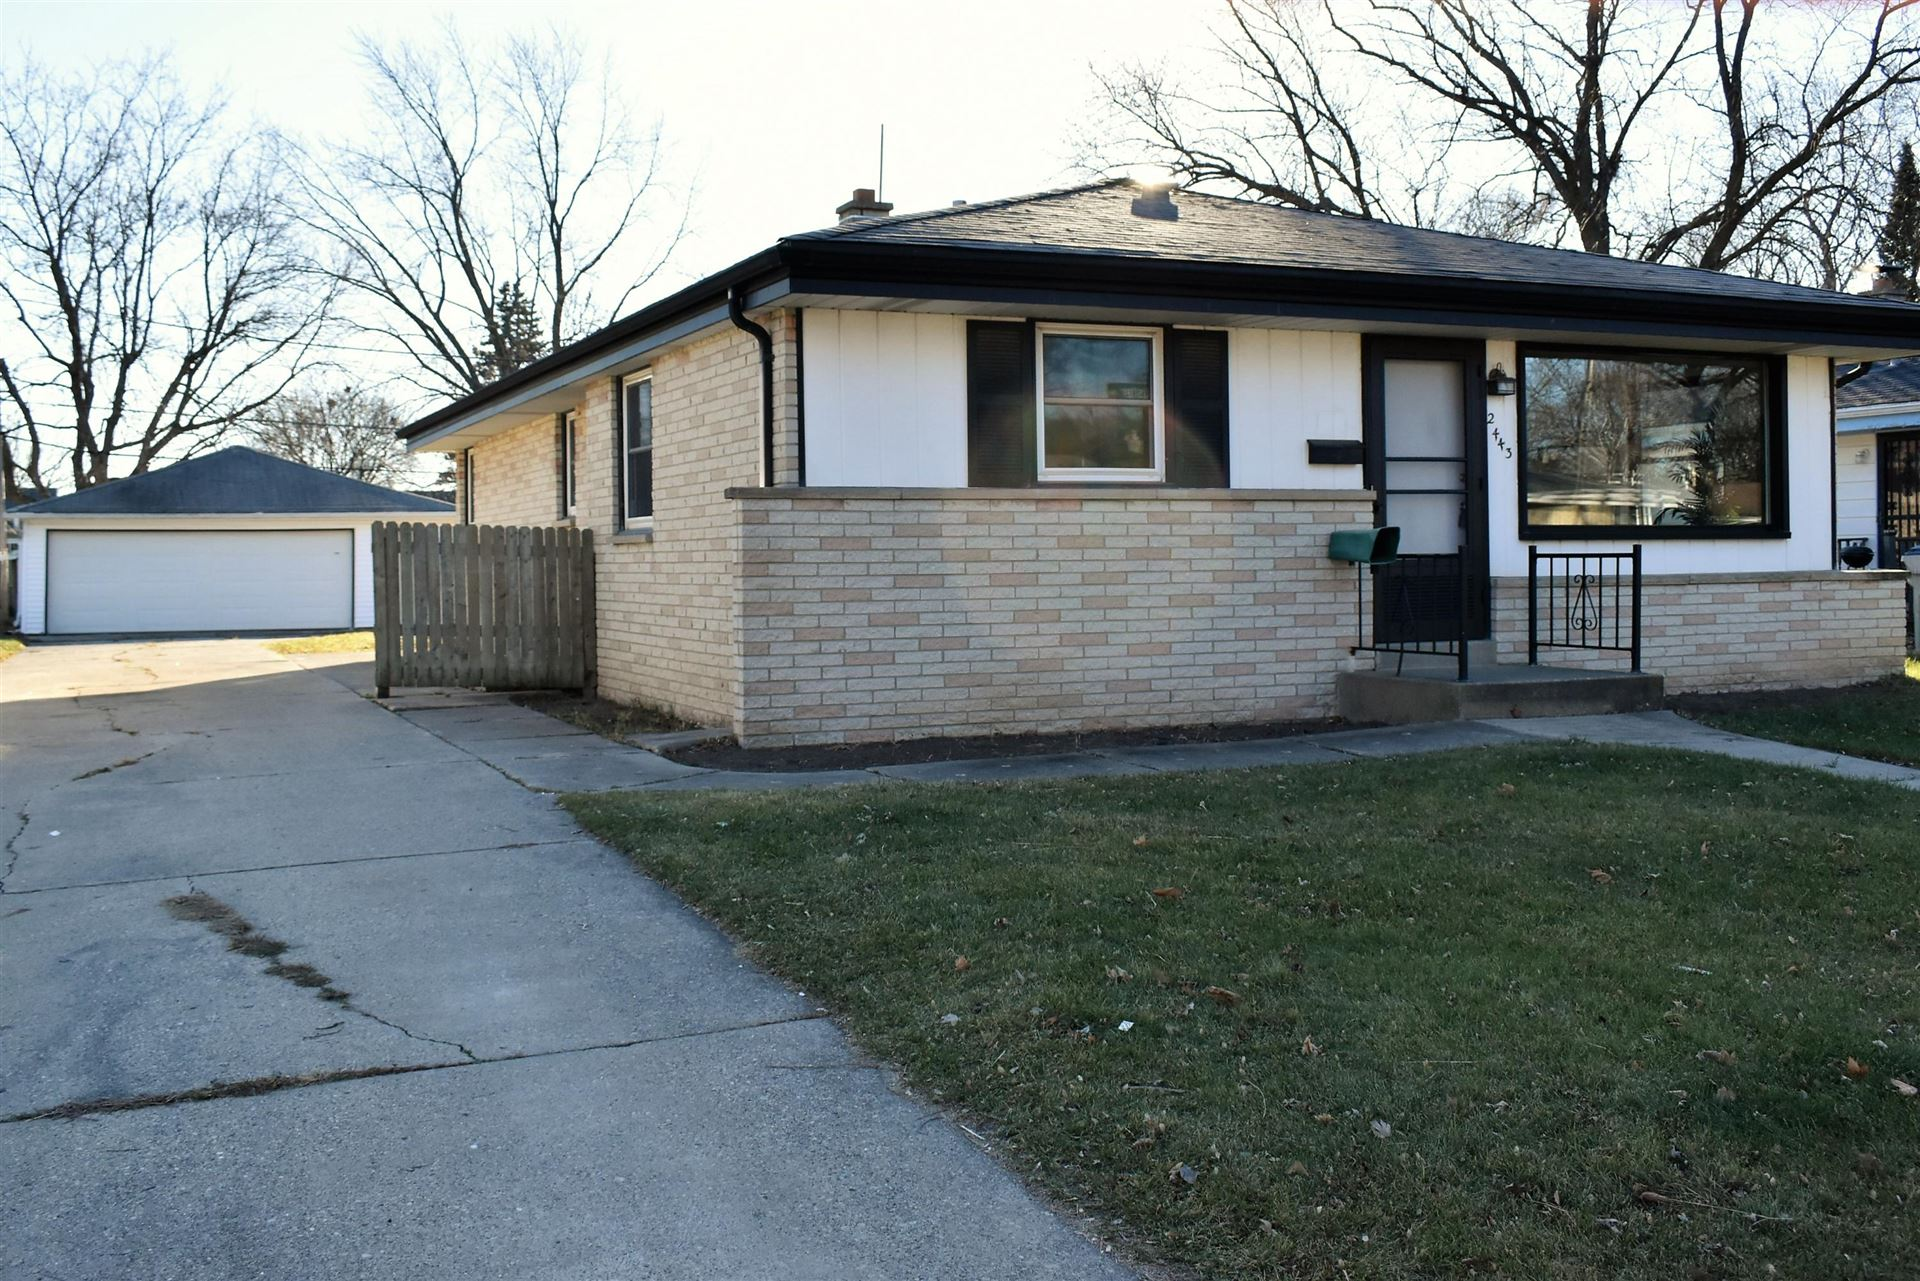 2443 W Custer Ave, Milwaukee, WI 53209 - #: 1720280